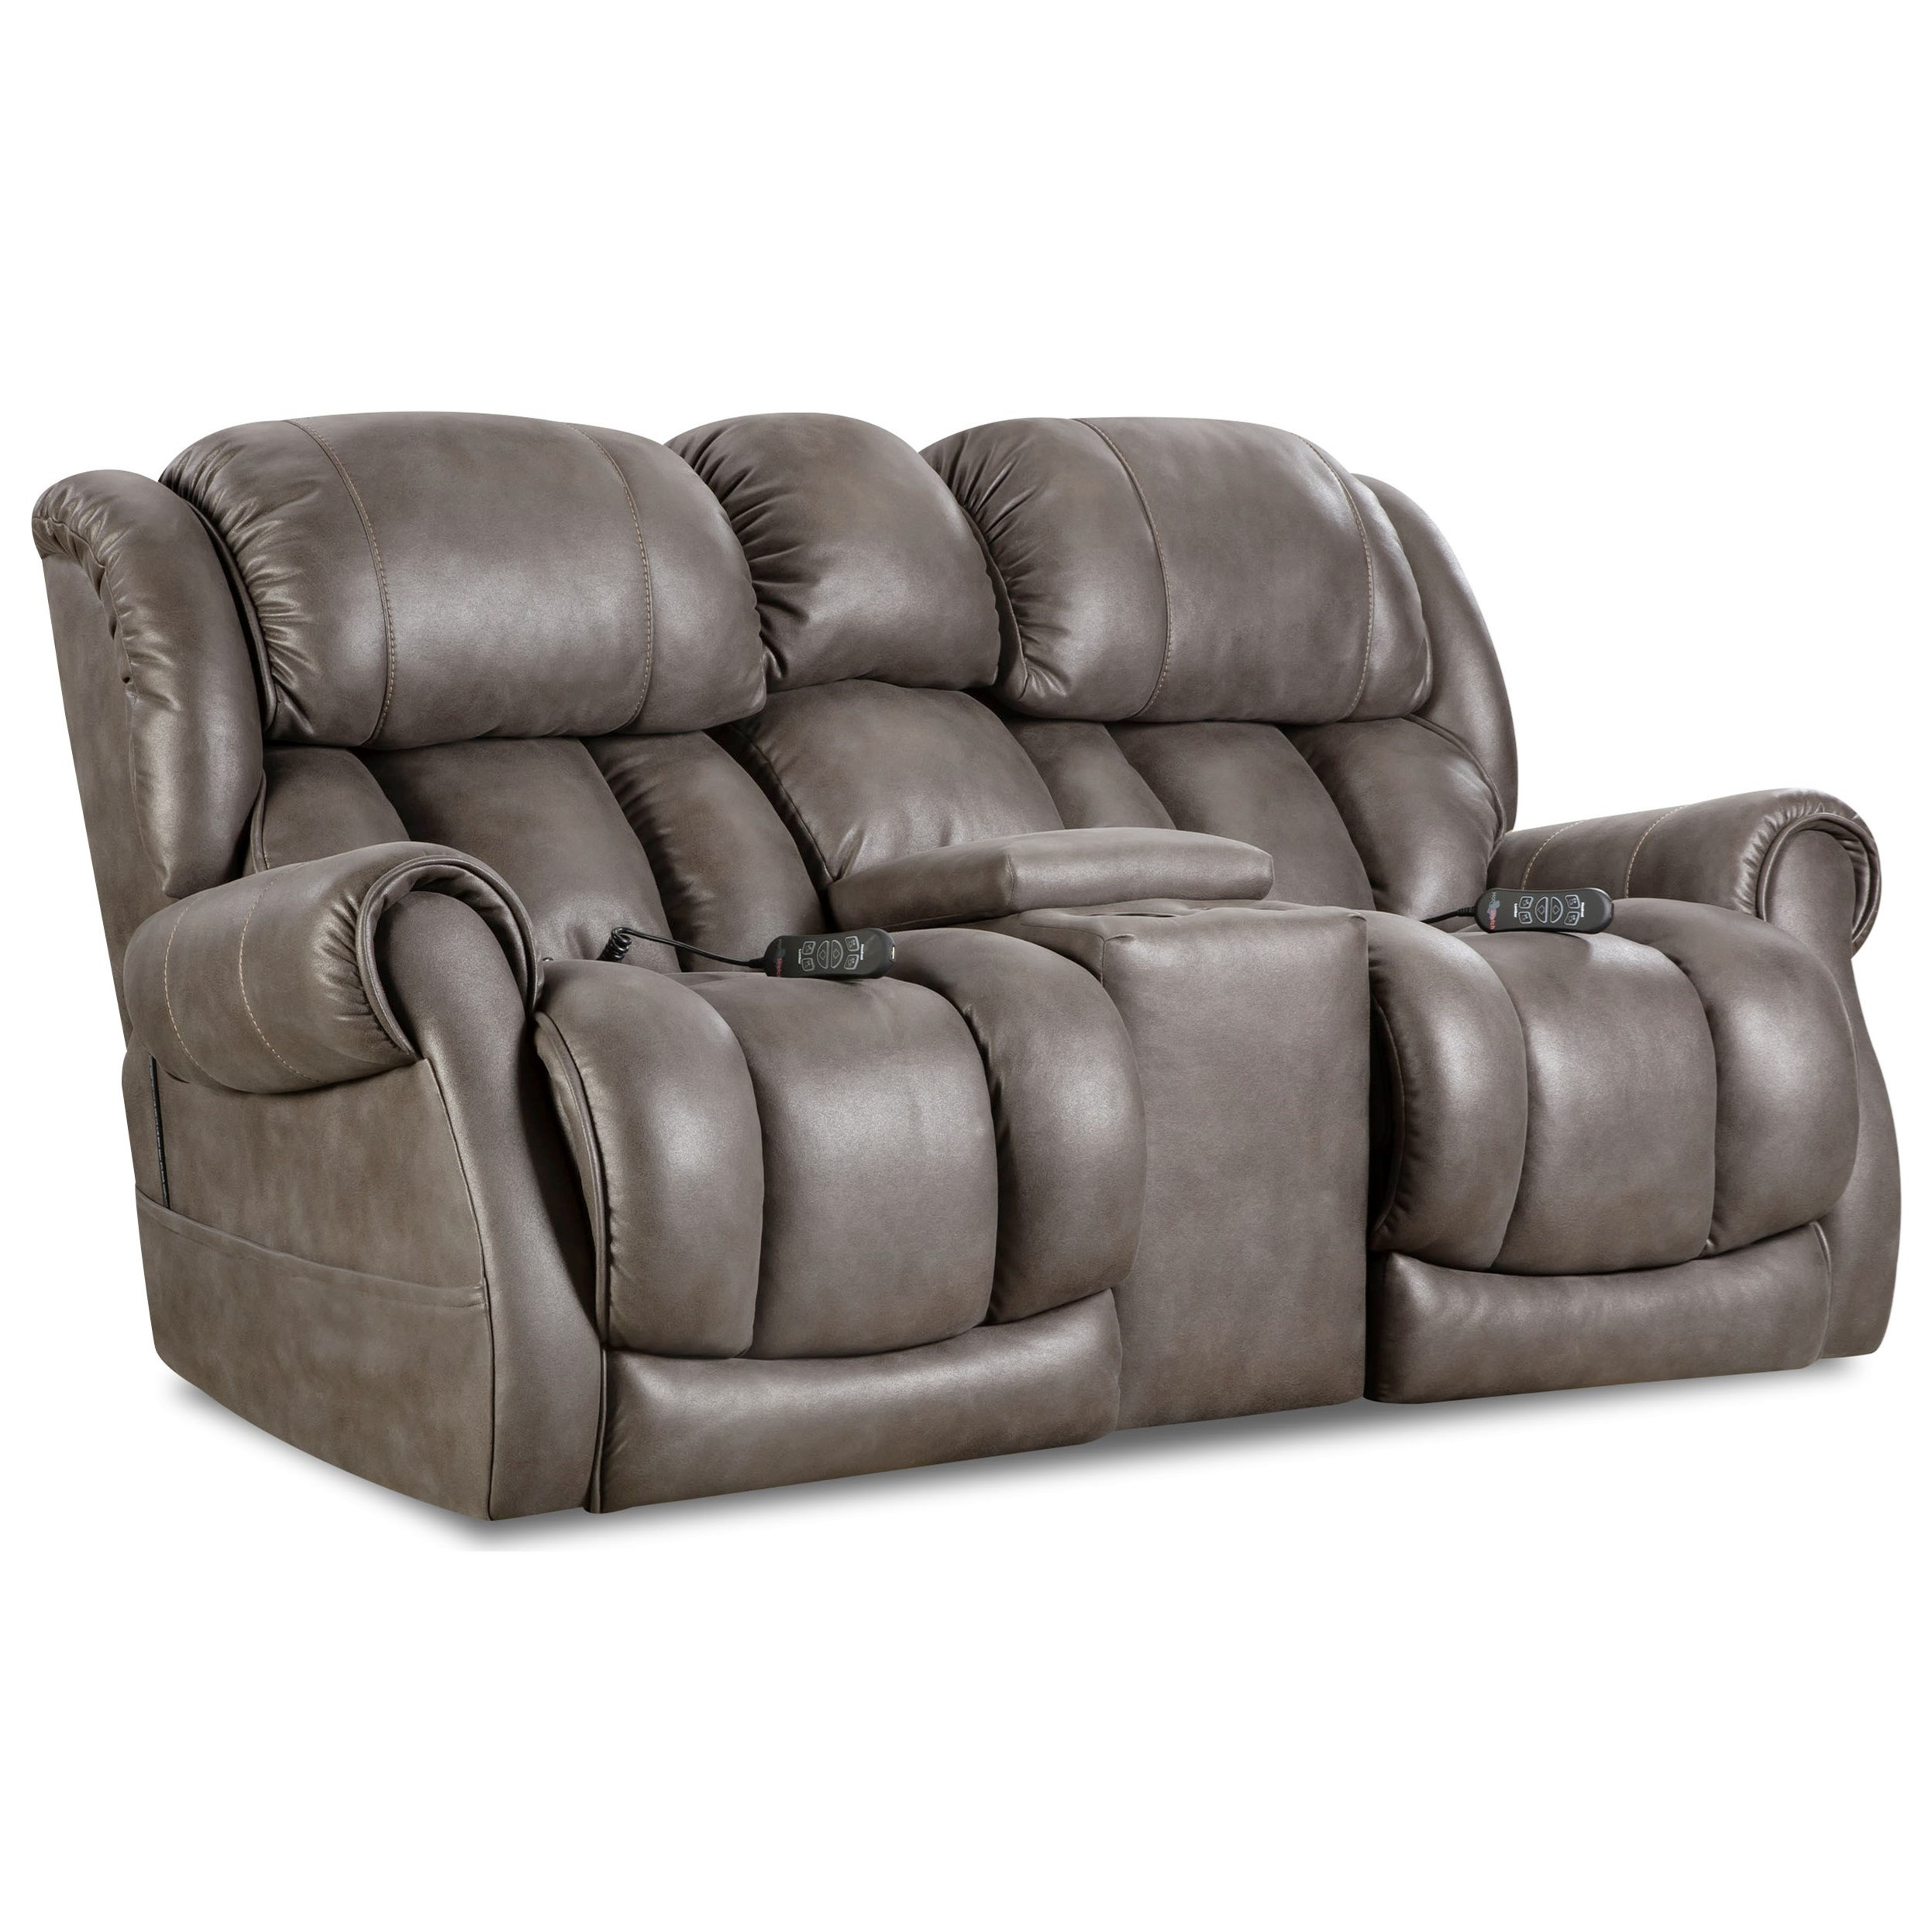 Atlantis Power Reclining Console Loveseat by HomeStretch at Standard Furniture